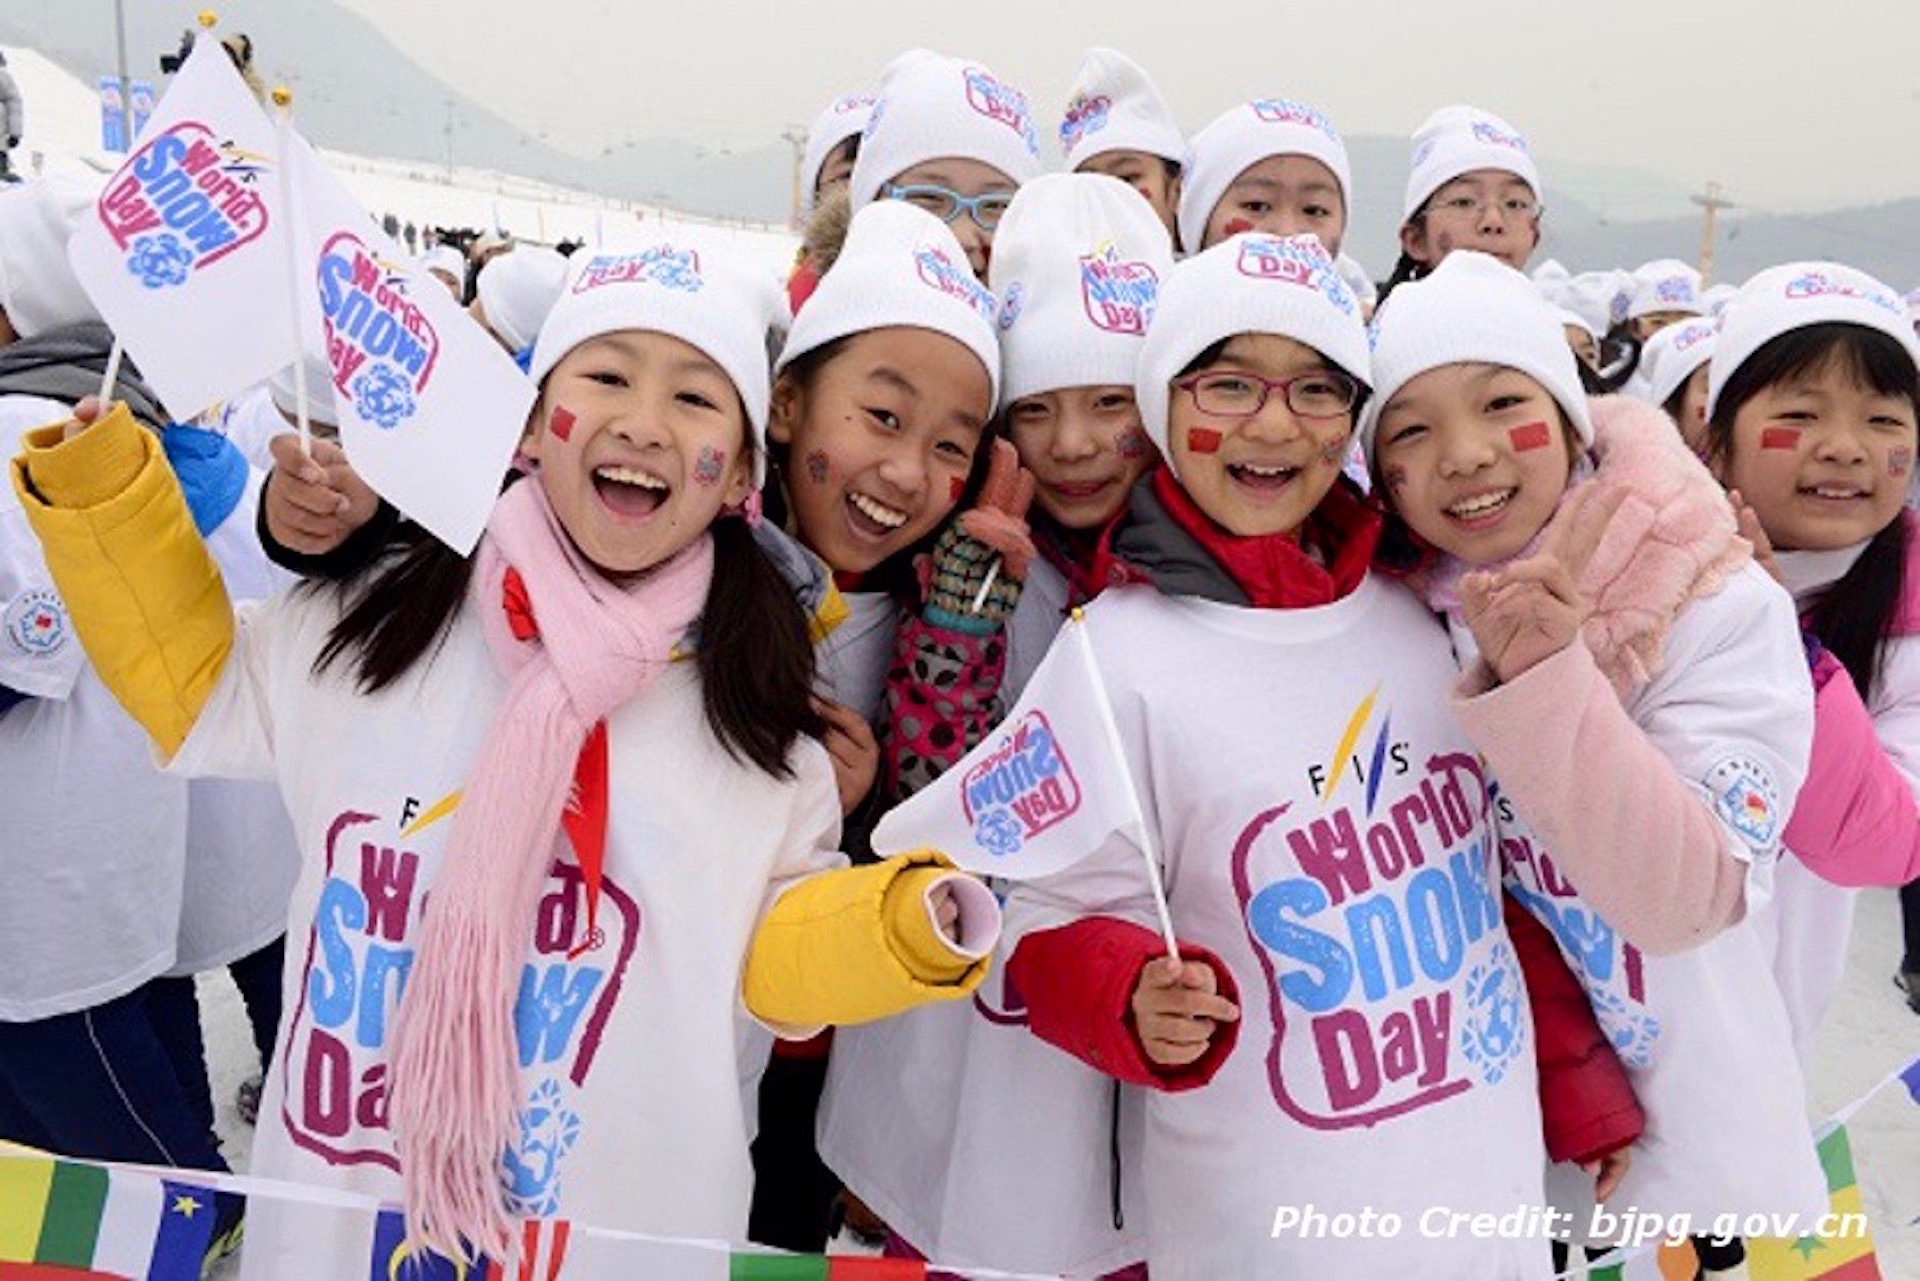 FIS – World Snow Day 2016, Beijing/China